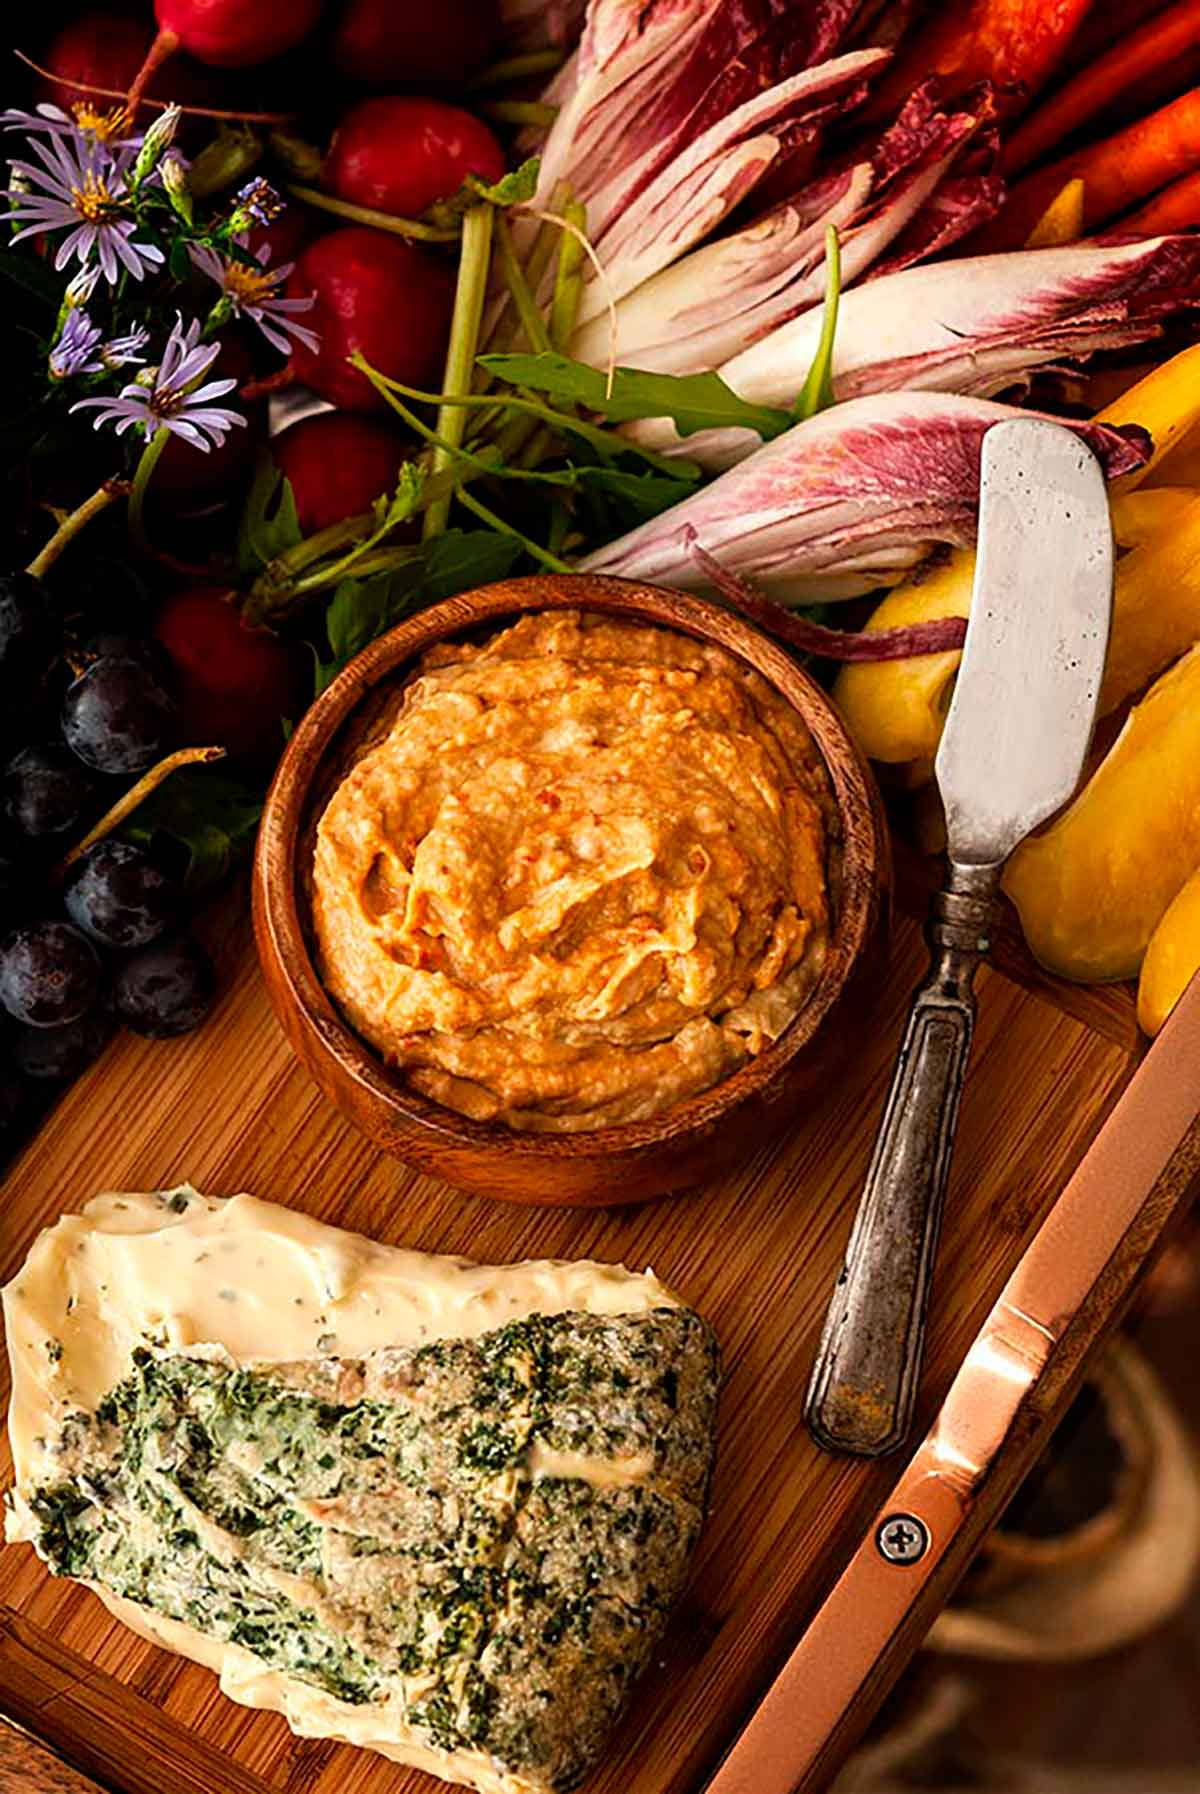 A bowl of hummus on a board with herbed cheese and a cheese knife, surrounded by vegetables.